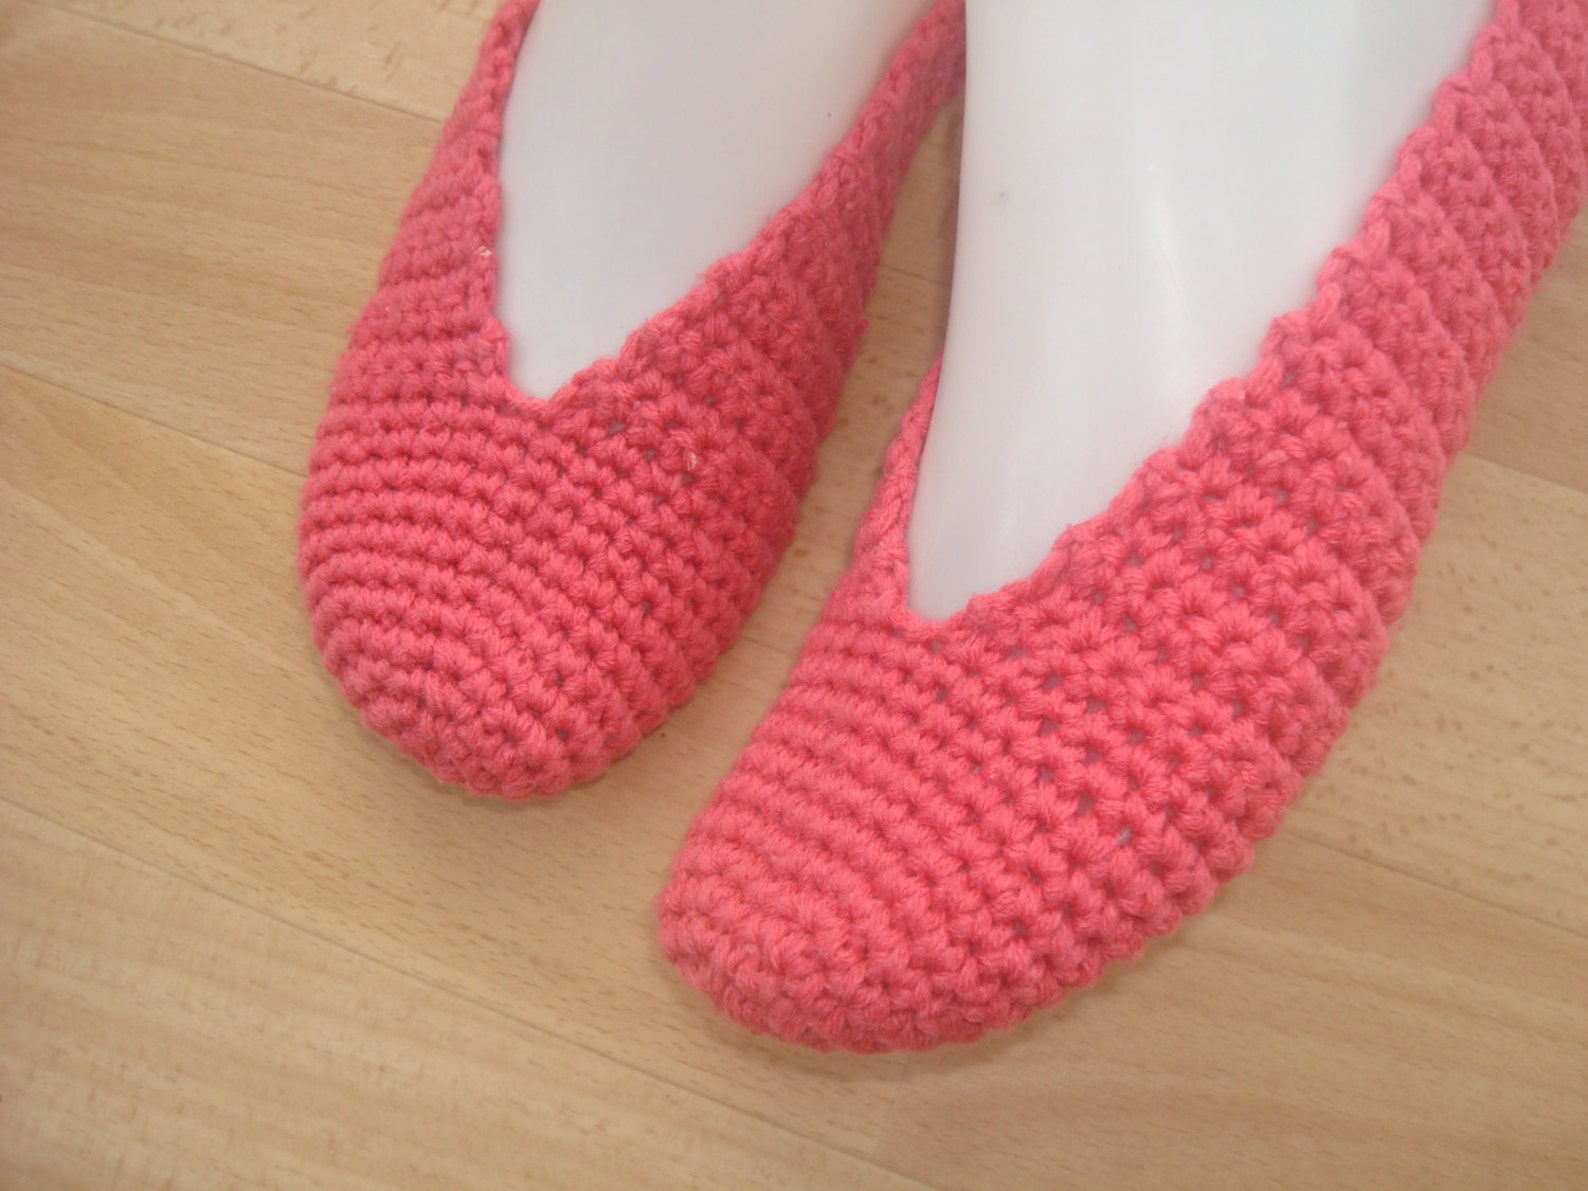 pink womens girls crochet slippers, house knitted elegant slippers, bridal dance shoes, home ballet flats, pilates yoga shoes so